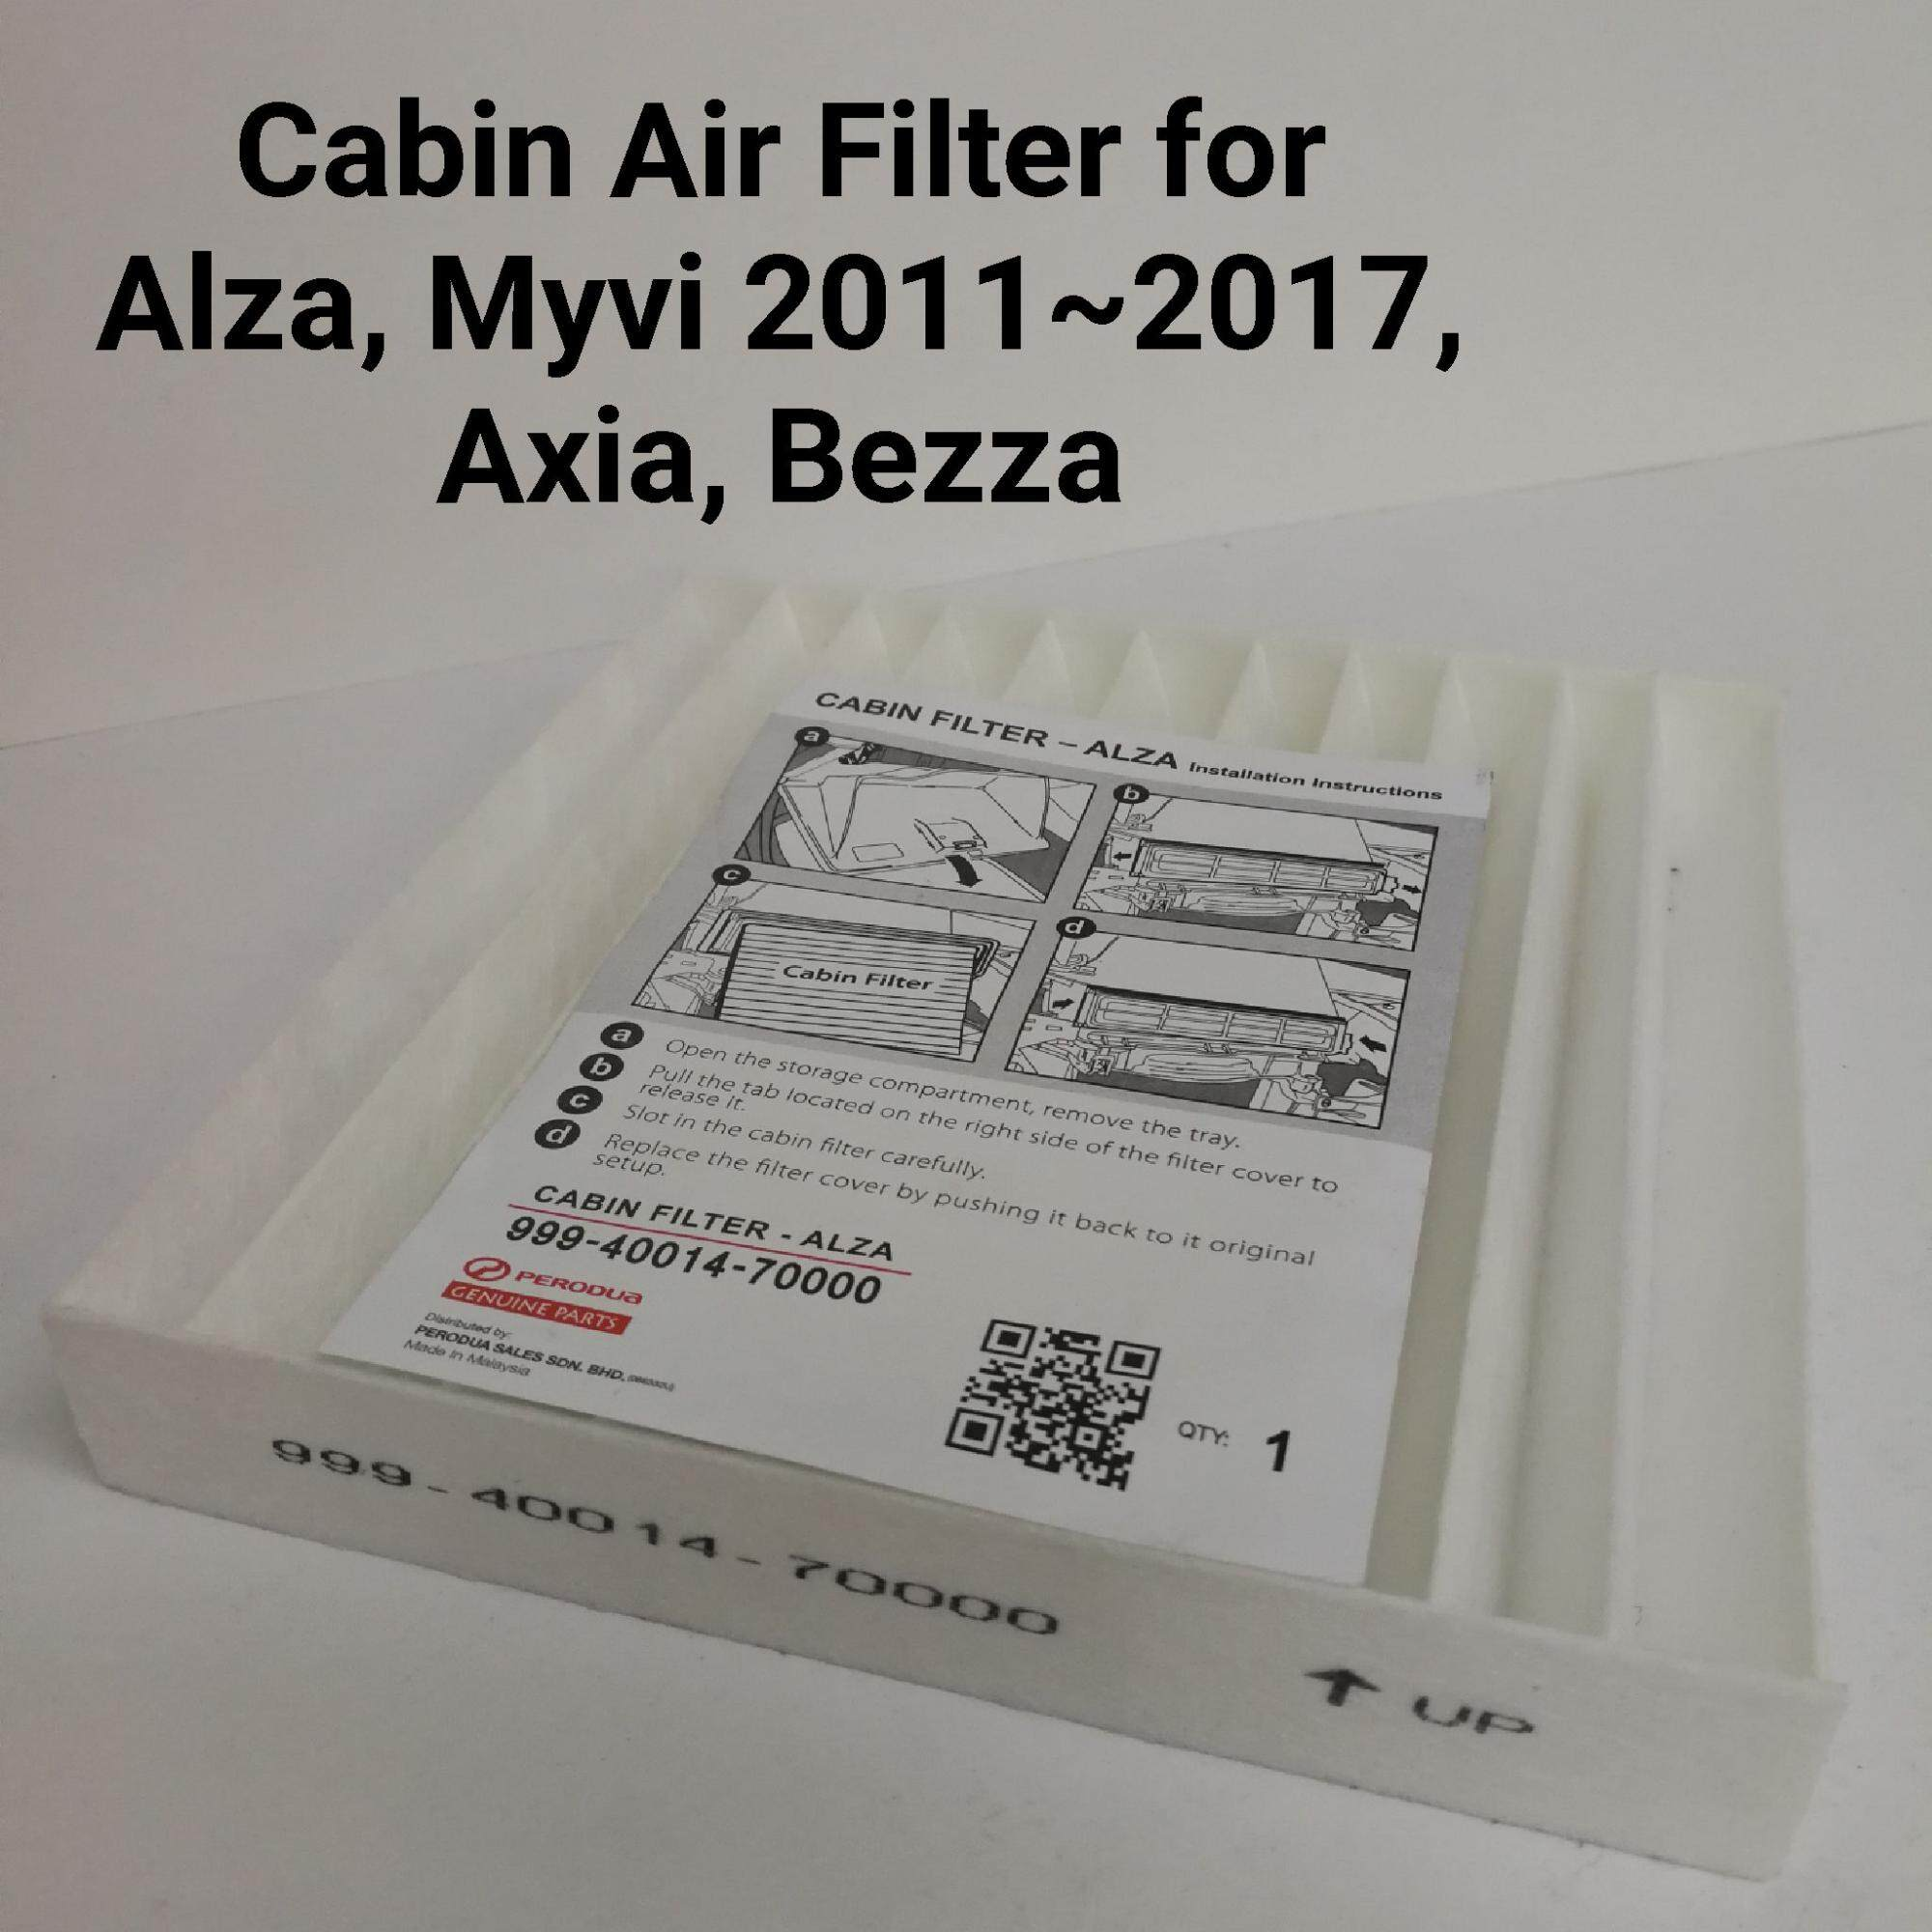 Perodua Cabin Air Filter For Alza, Myvi 2011 ~2017, Bezza, Axia By Triple Star.